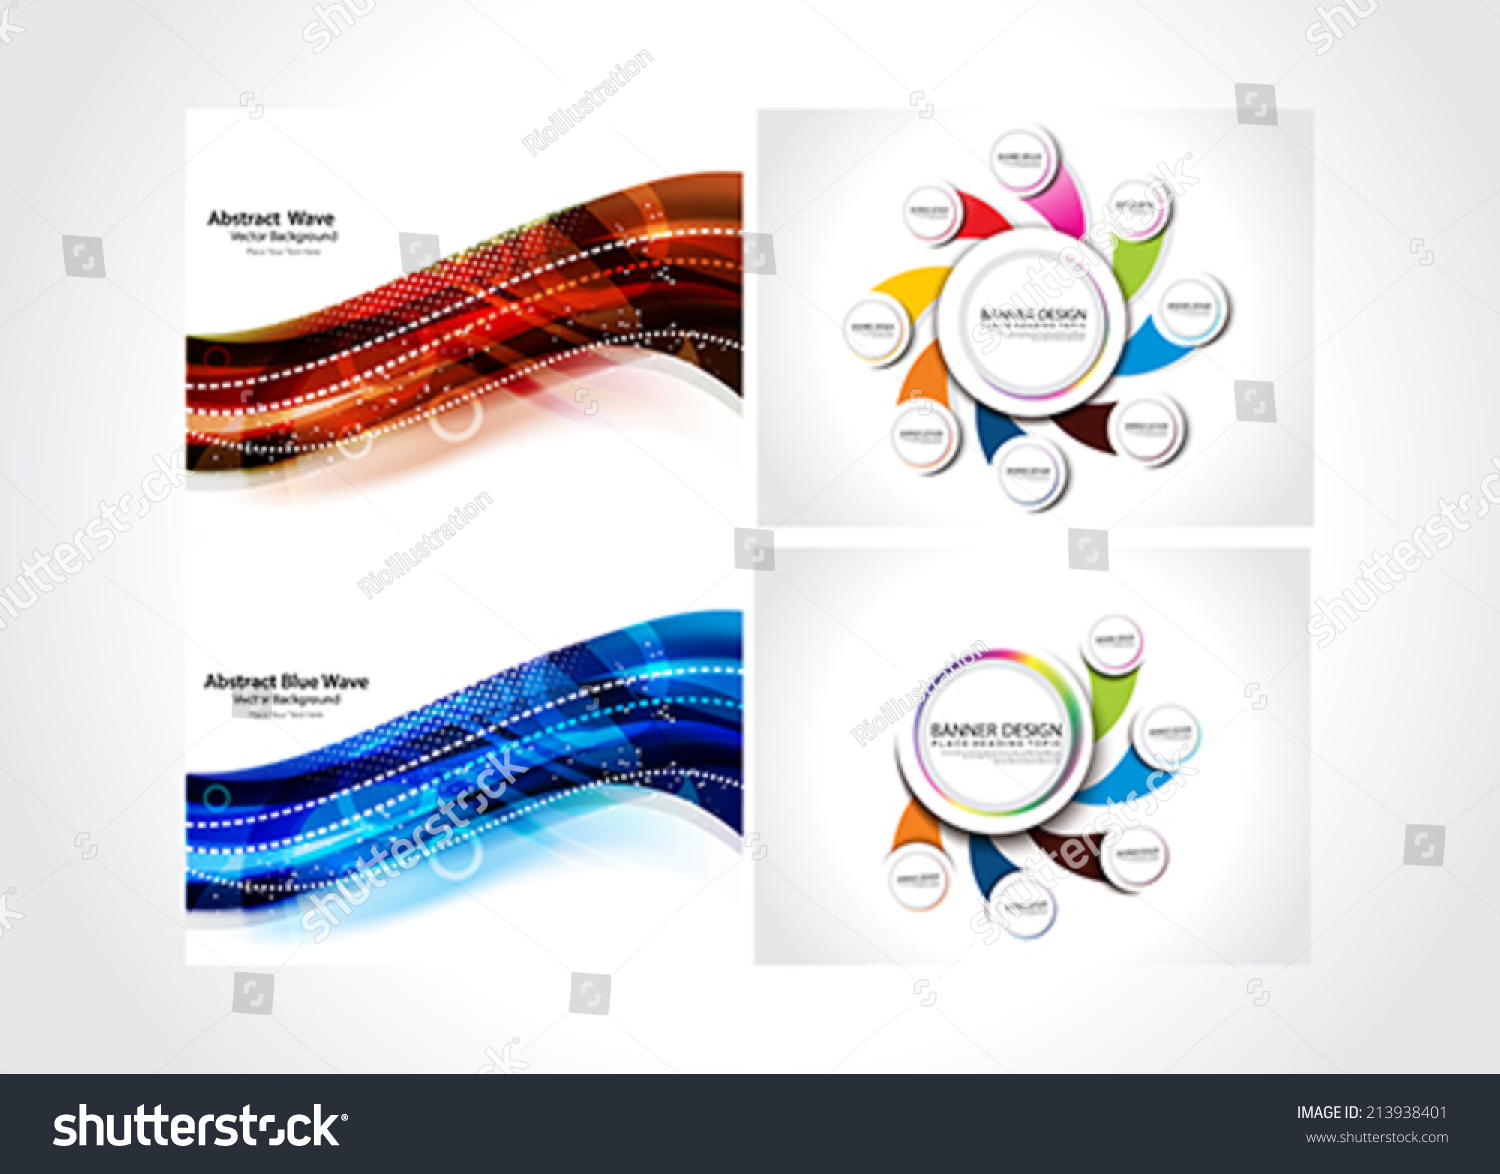 Store Banne Z Wave Abstract Background Web Banner Set Vector Stock Vector Royalty